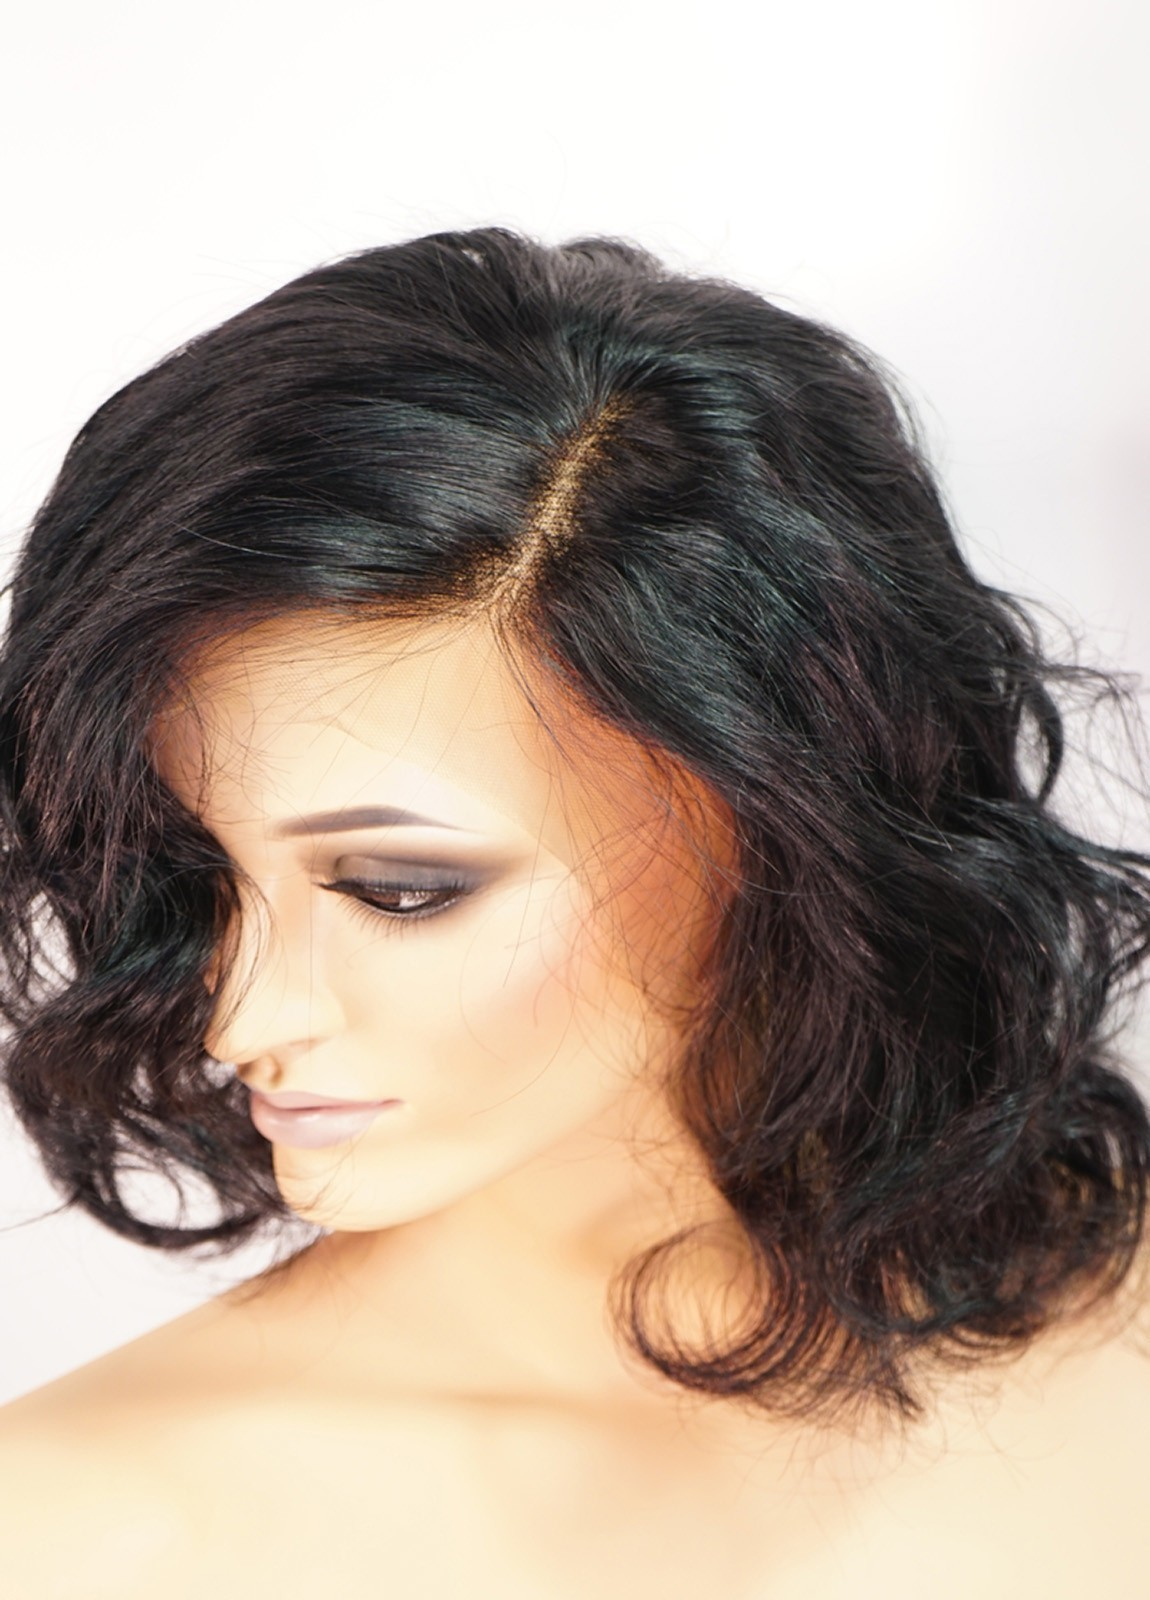 Katherine | Short Black Wigs Human Hair